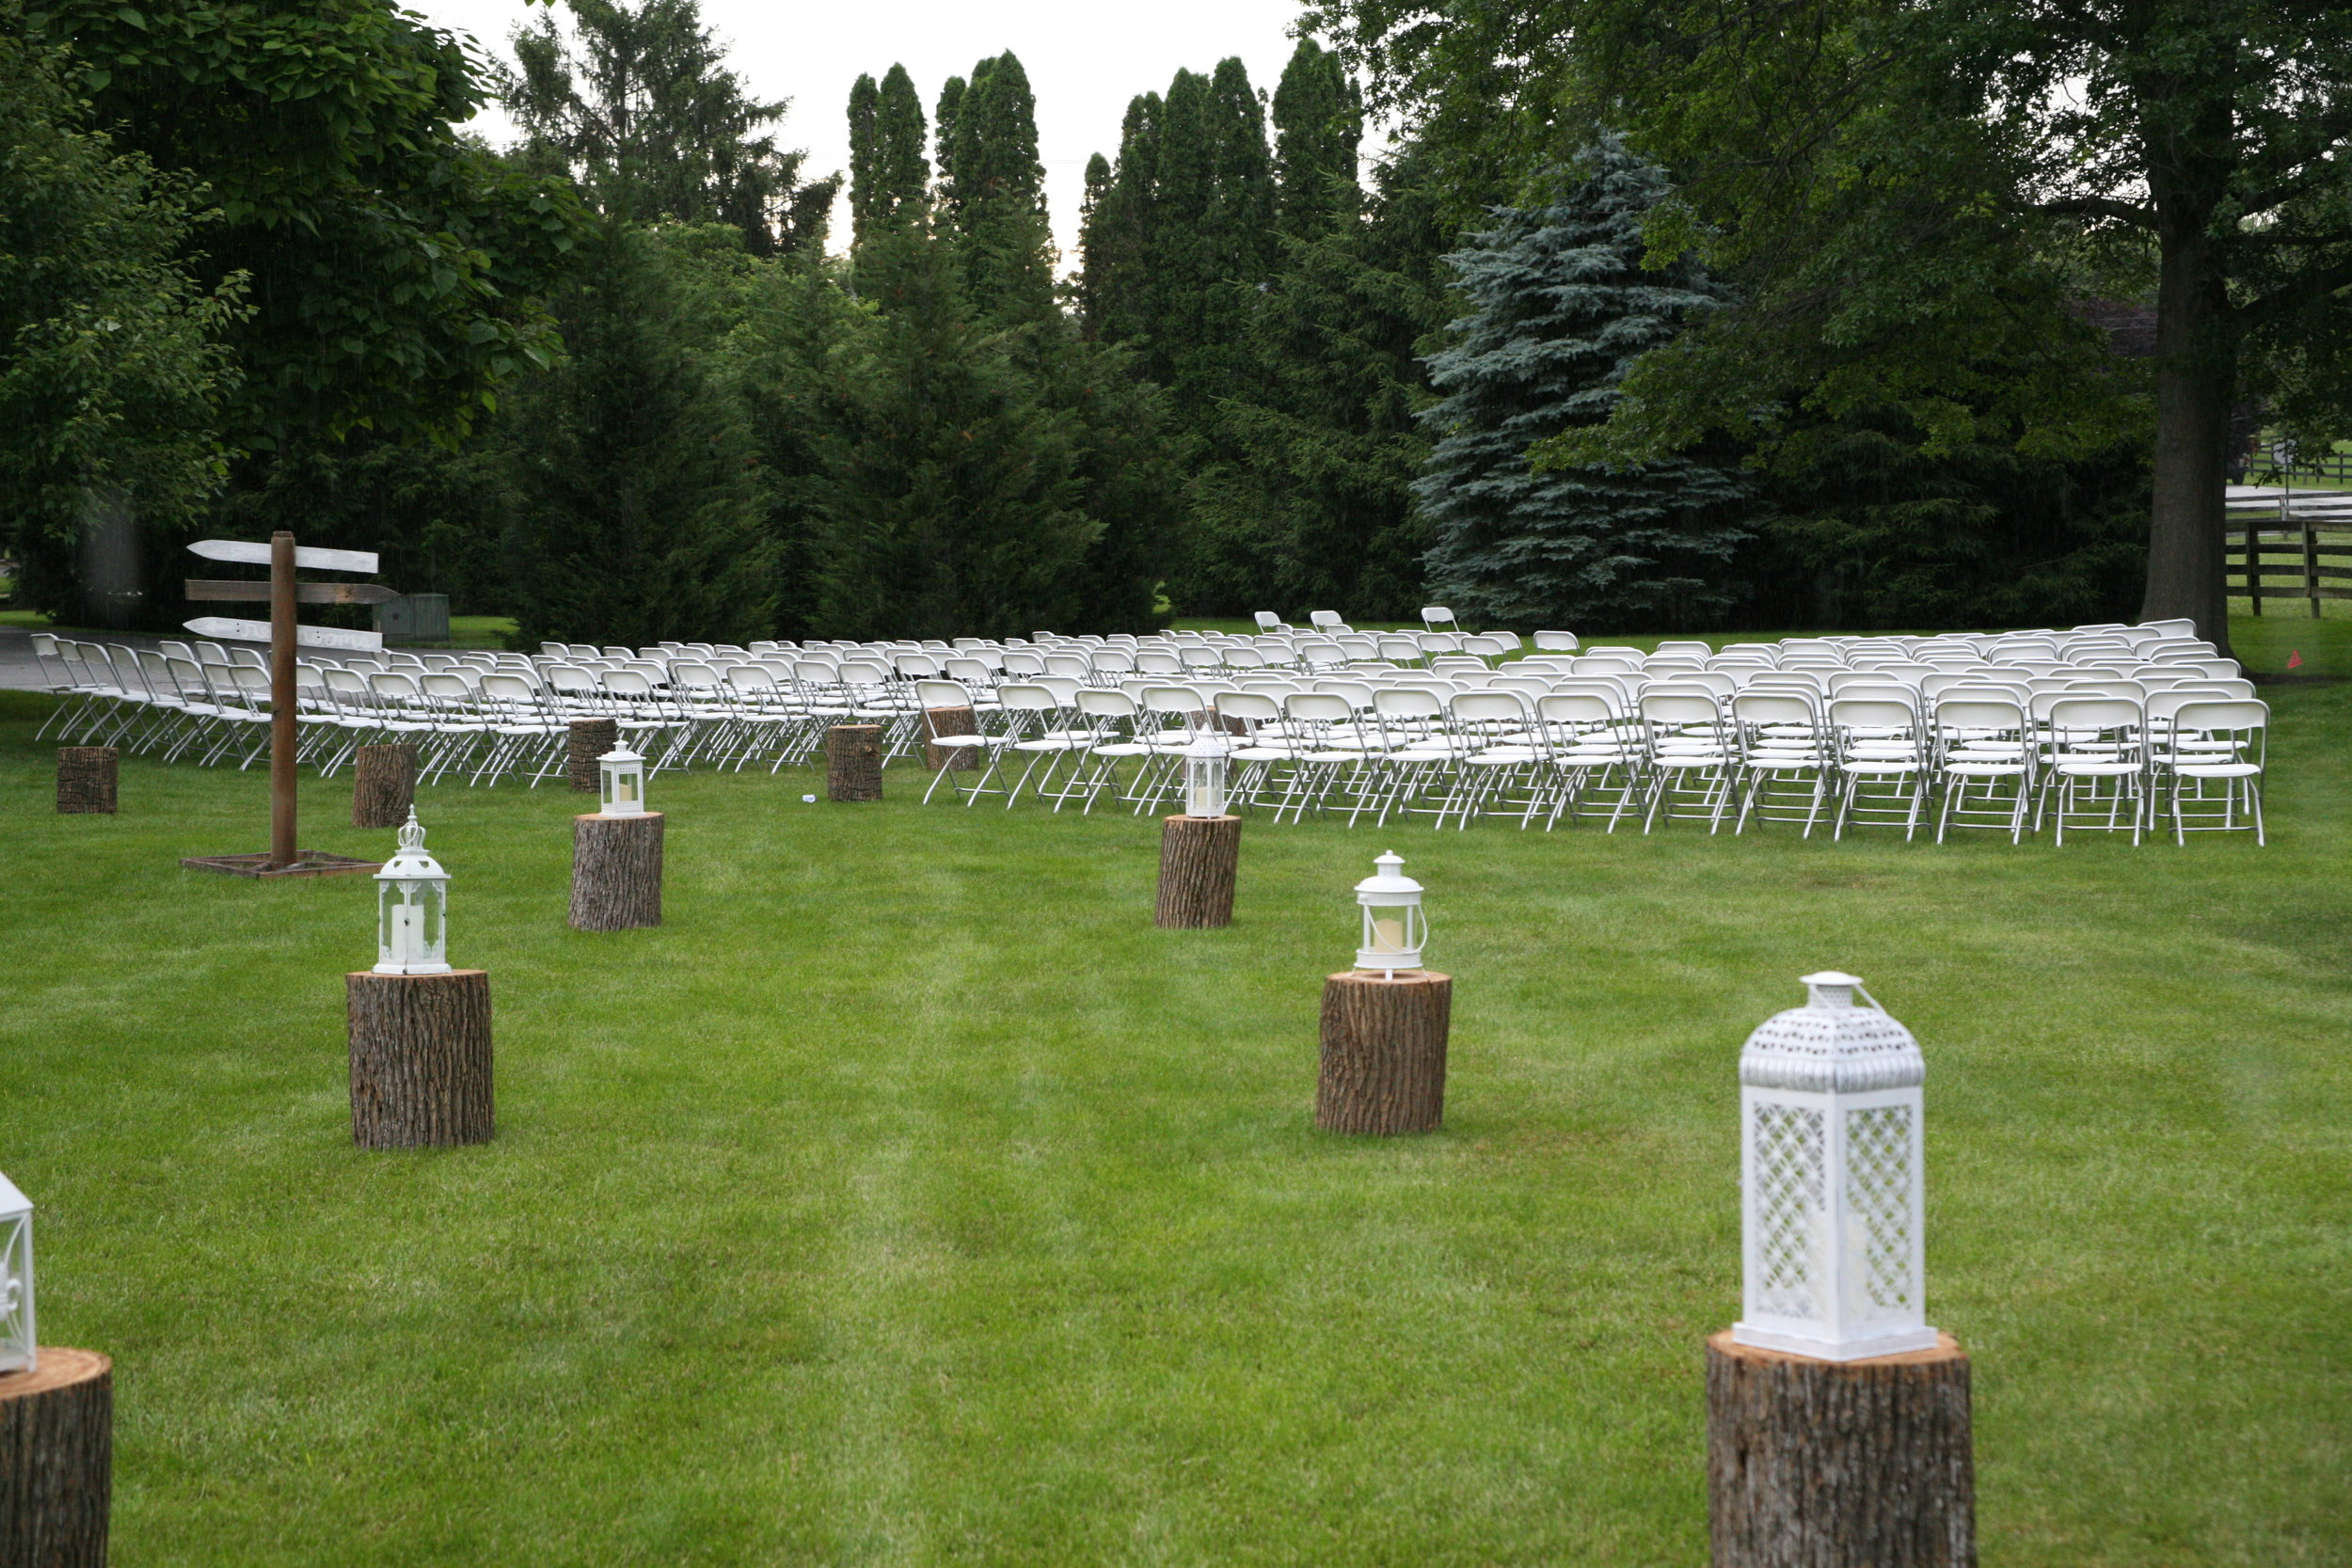 Chair rentals in Willow Street